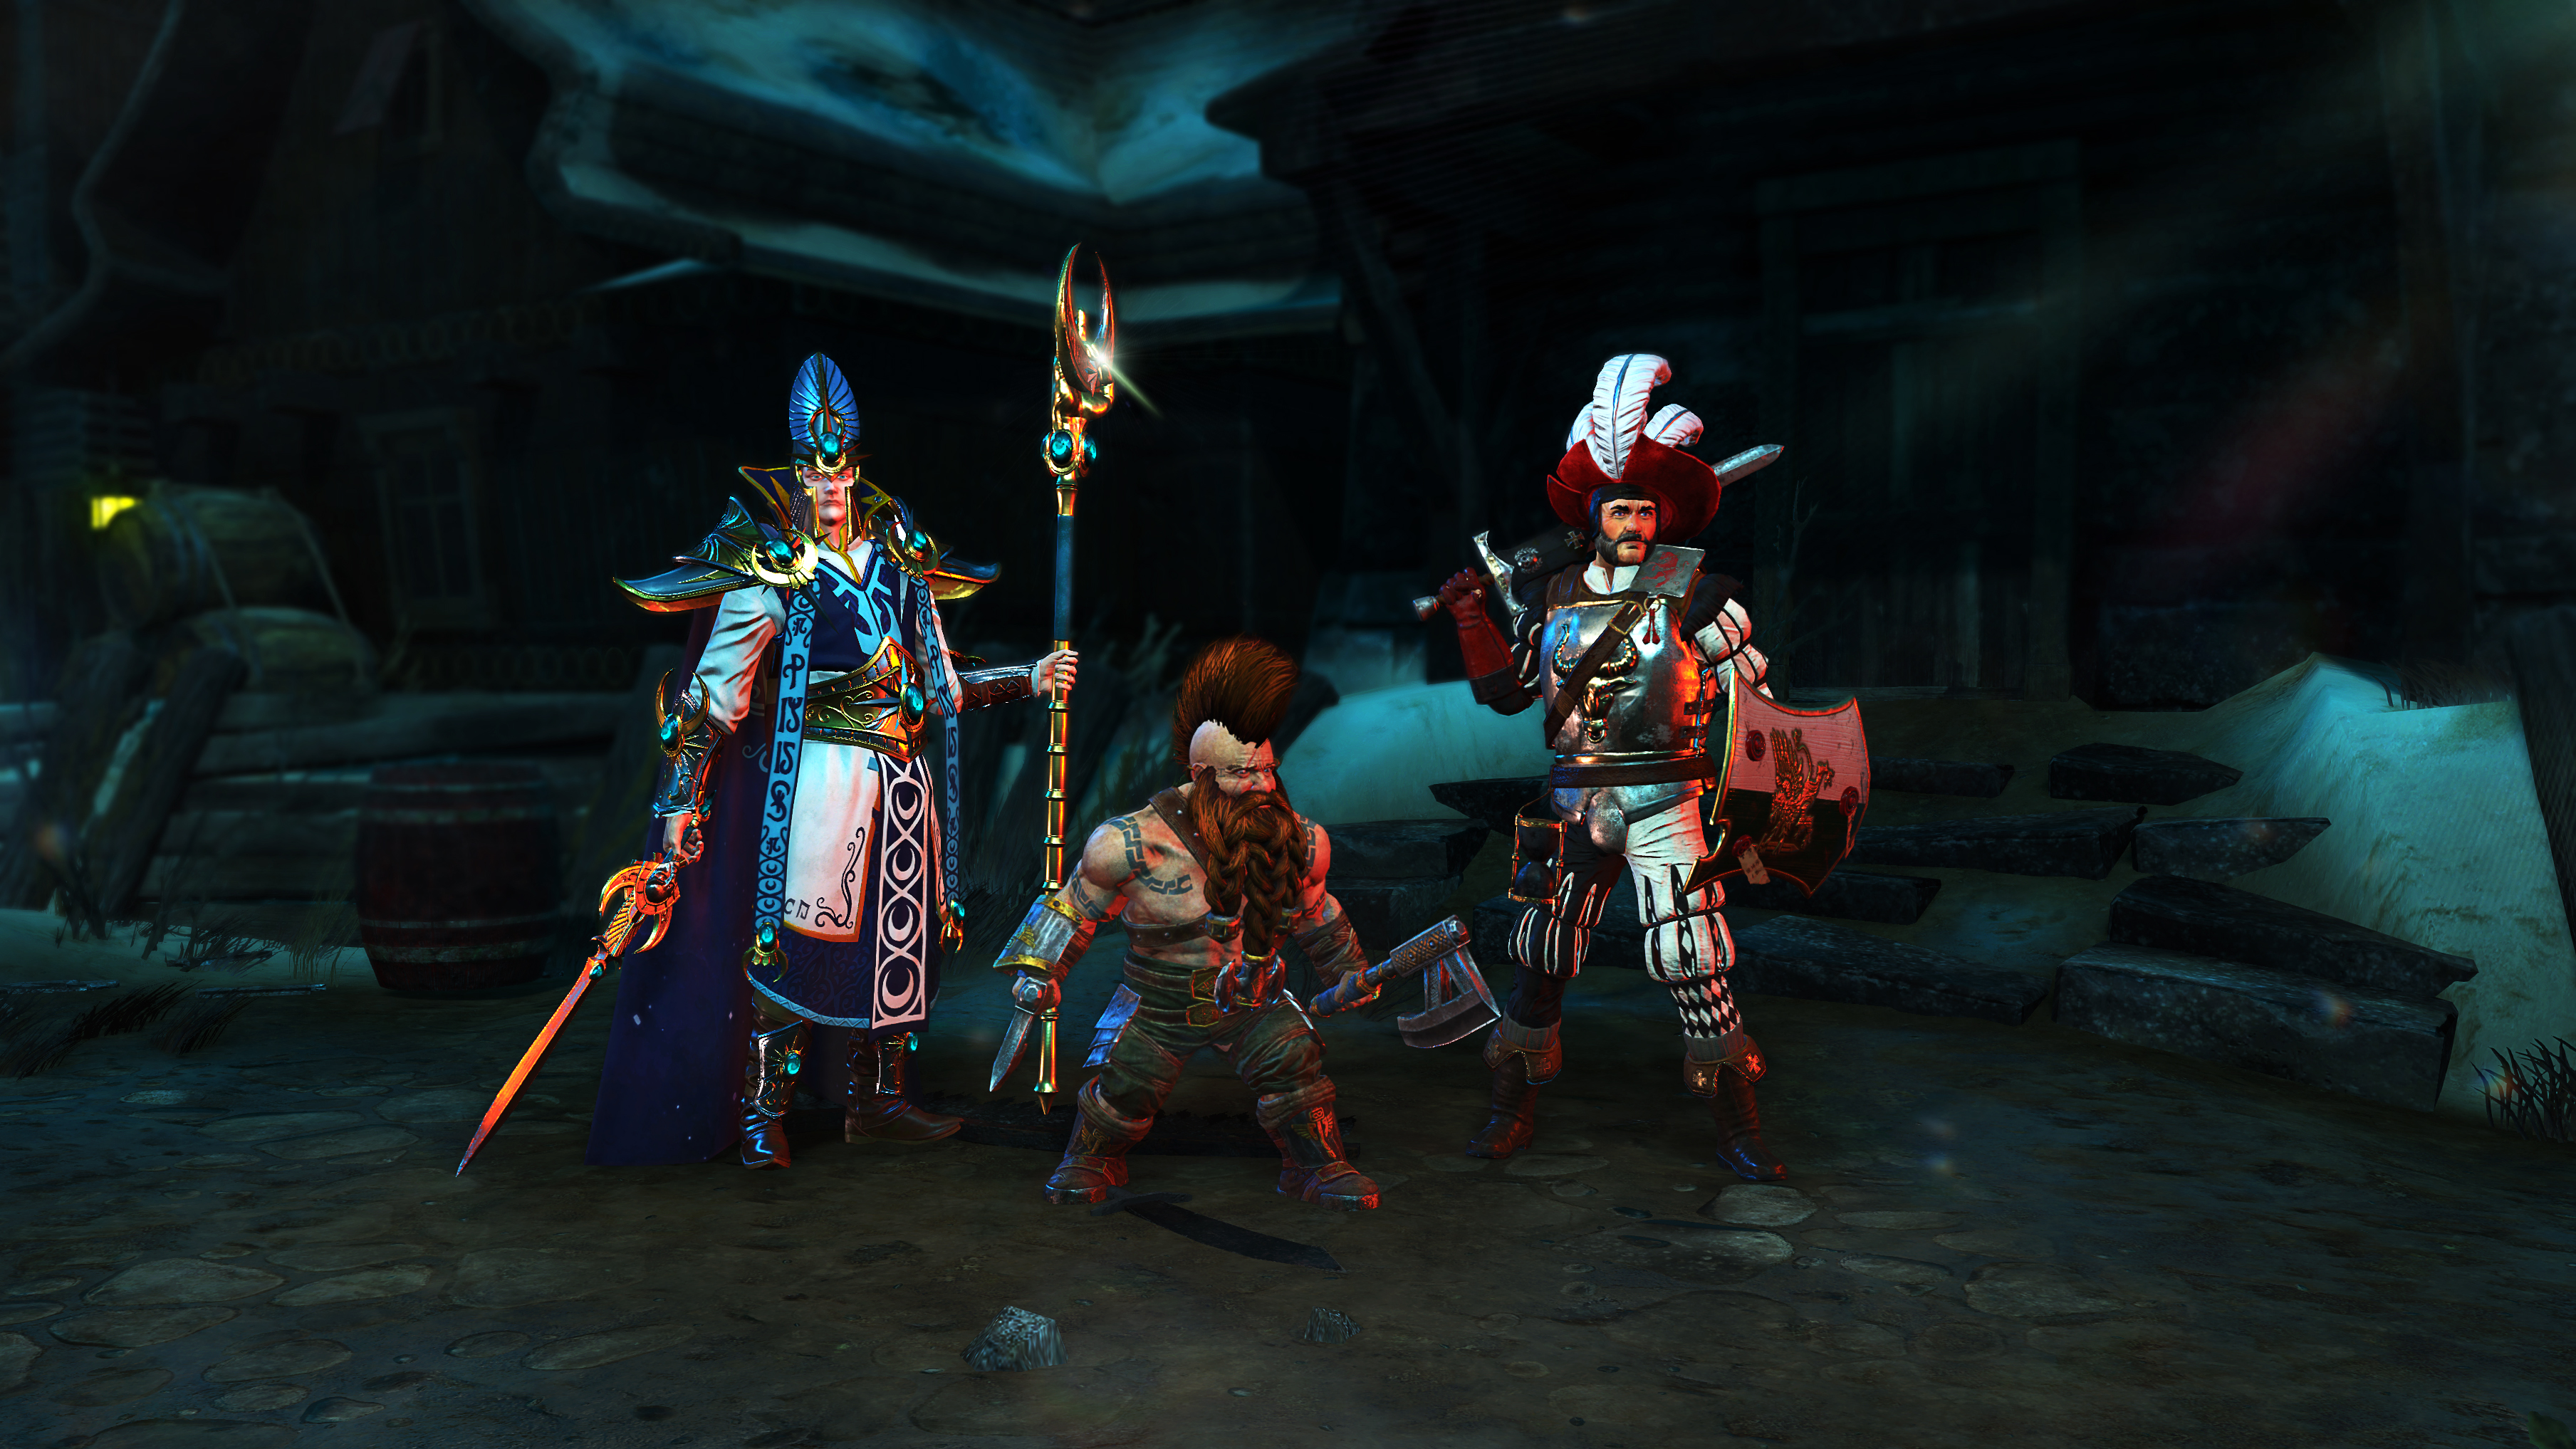 Warhammer: Chaosbane's story trailer sets the stage for hacking and slashing